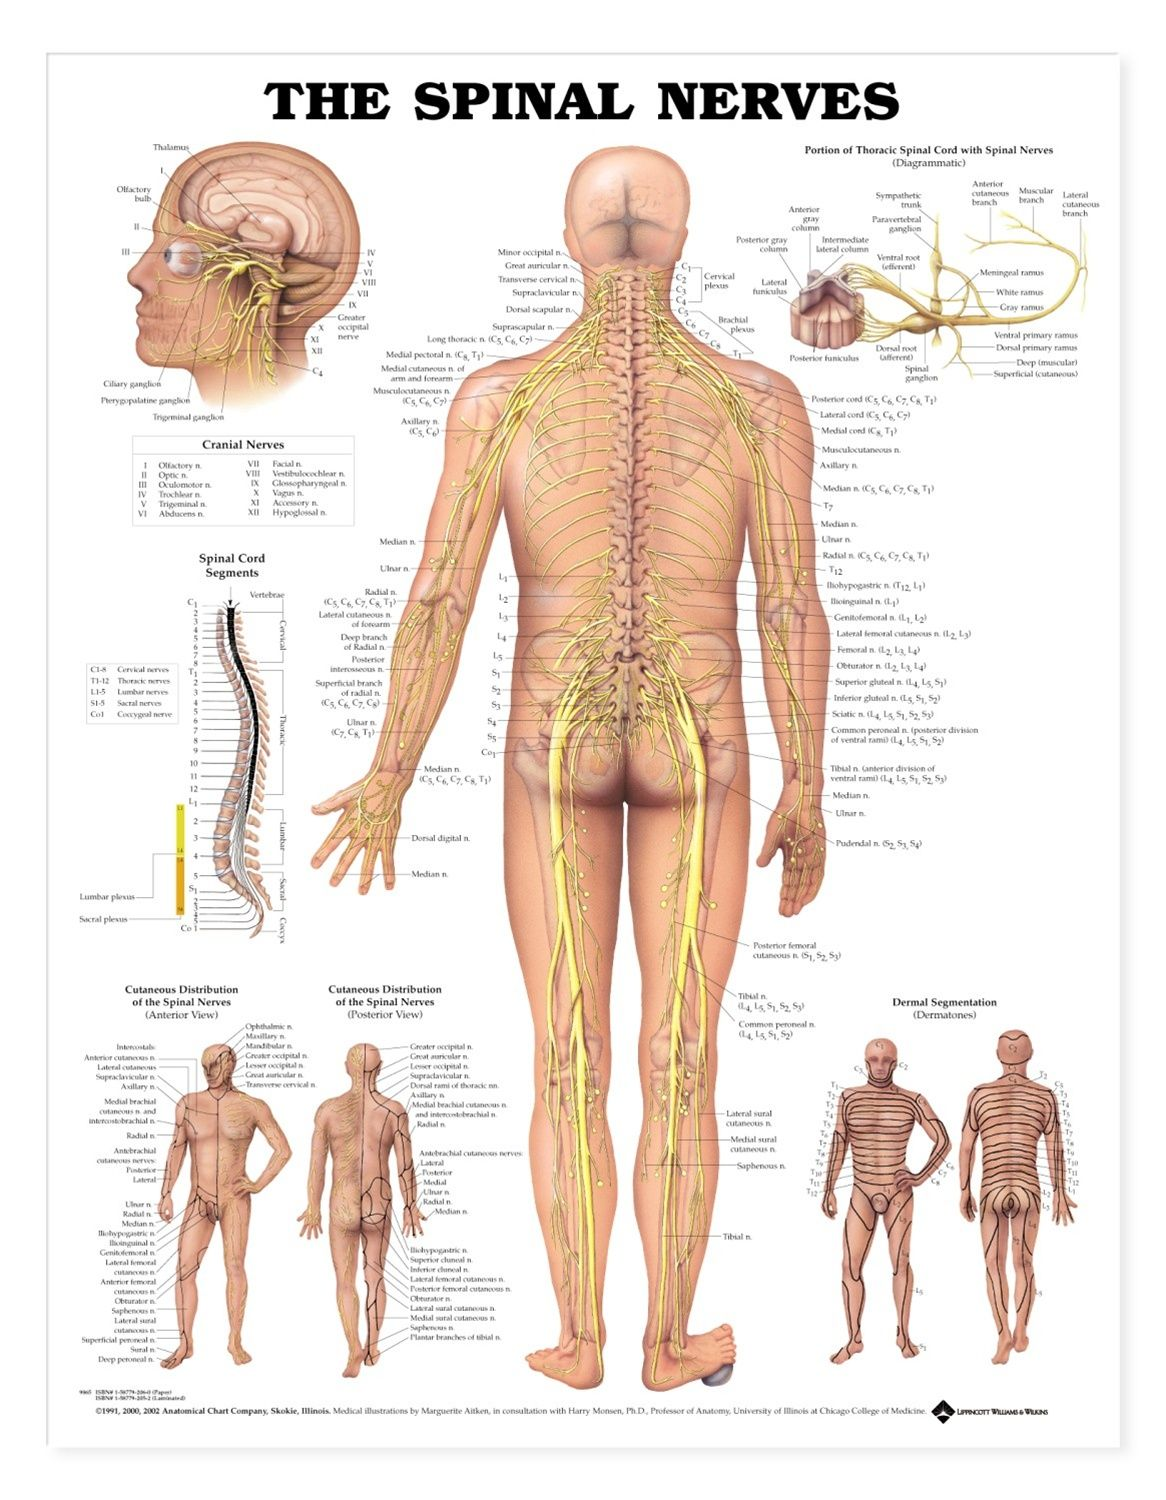 the spinal nerves anatomical chart styrene plastic 9781587796913 anatomystuff nerf body anatomy  [ 1166 x 1500 Pixel ]